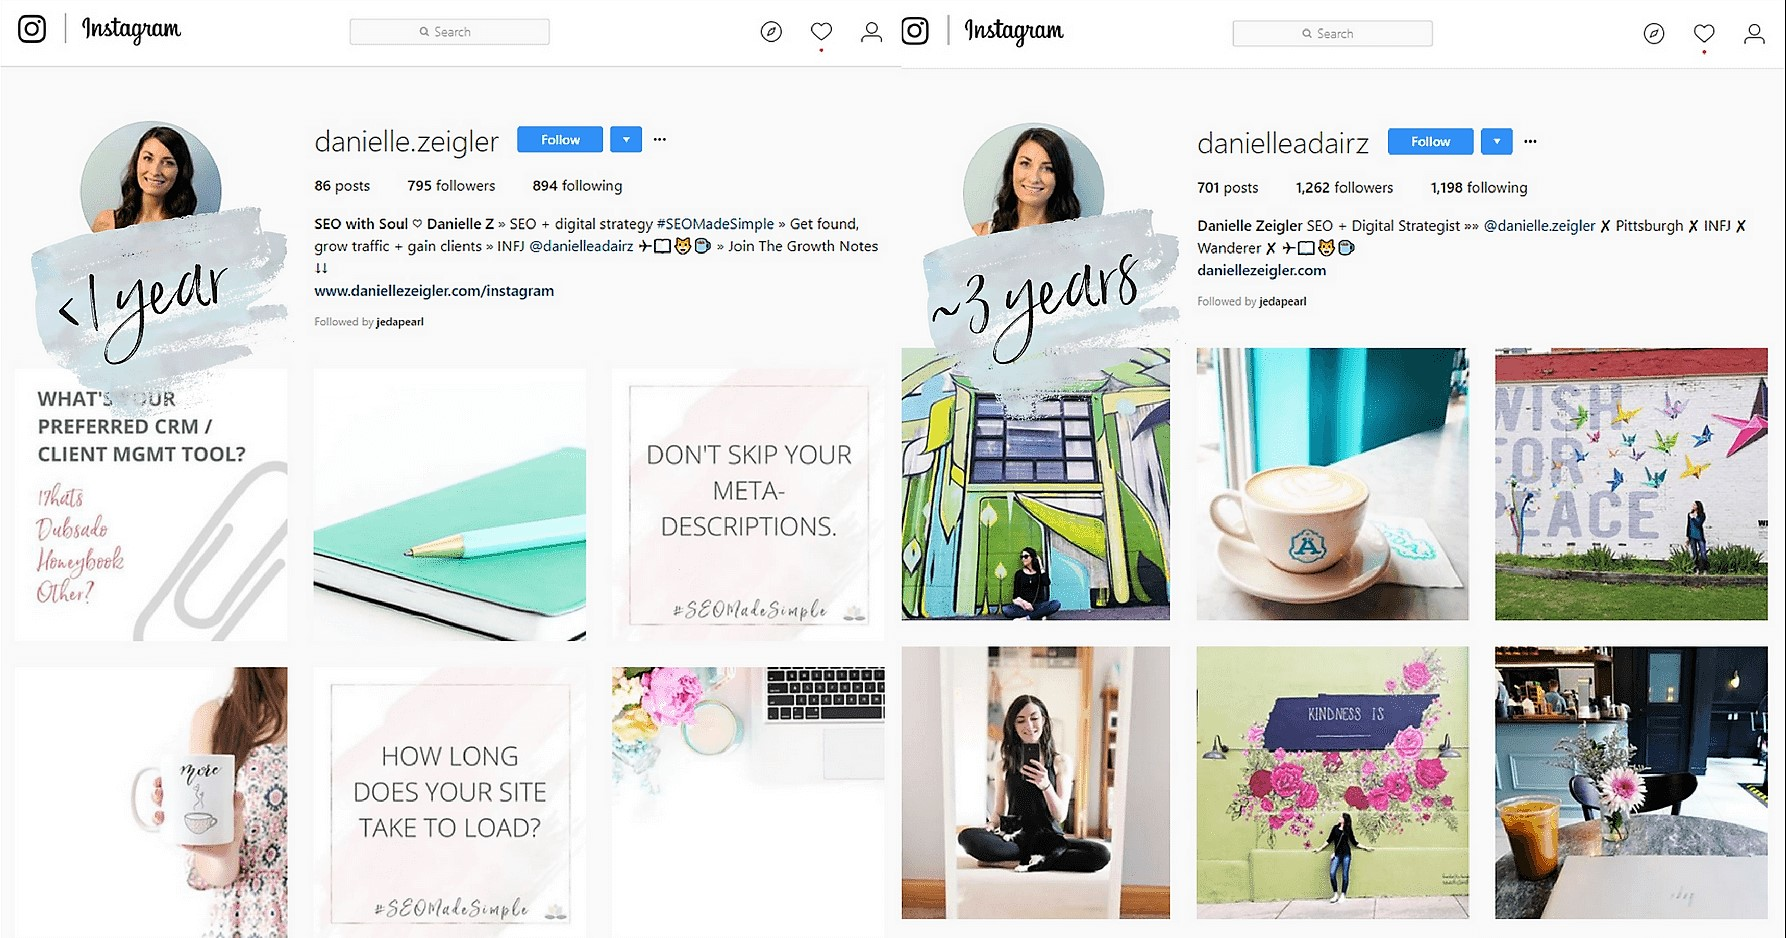 splitting instagram into personal and business worked for me